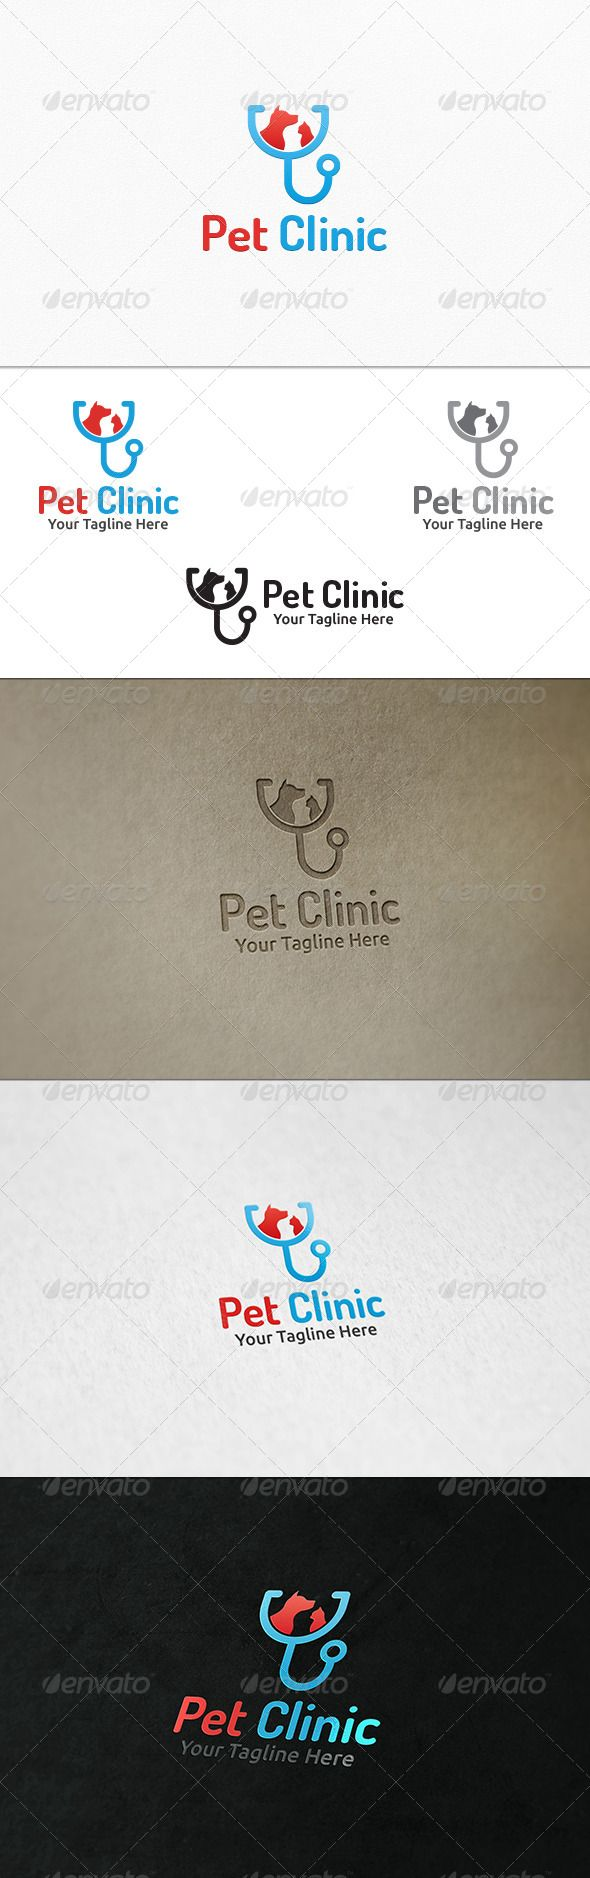 Pet Clinic - Logo Template